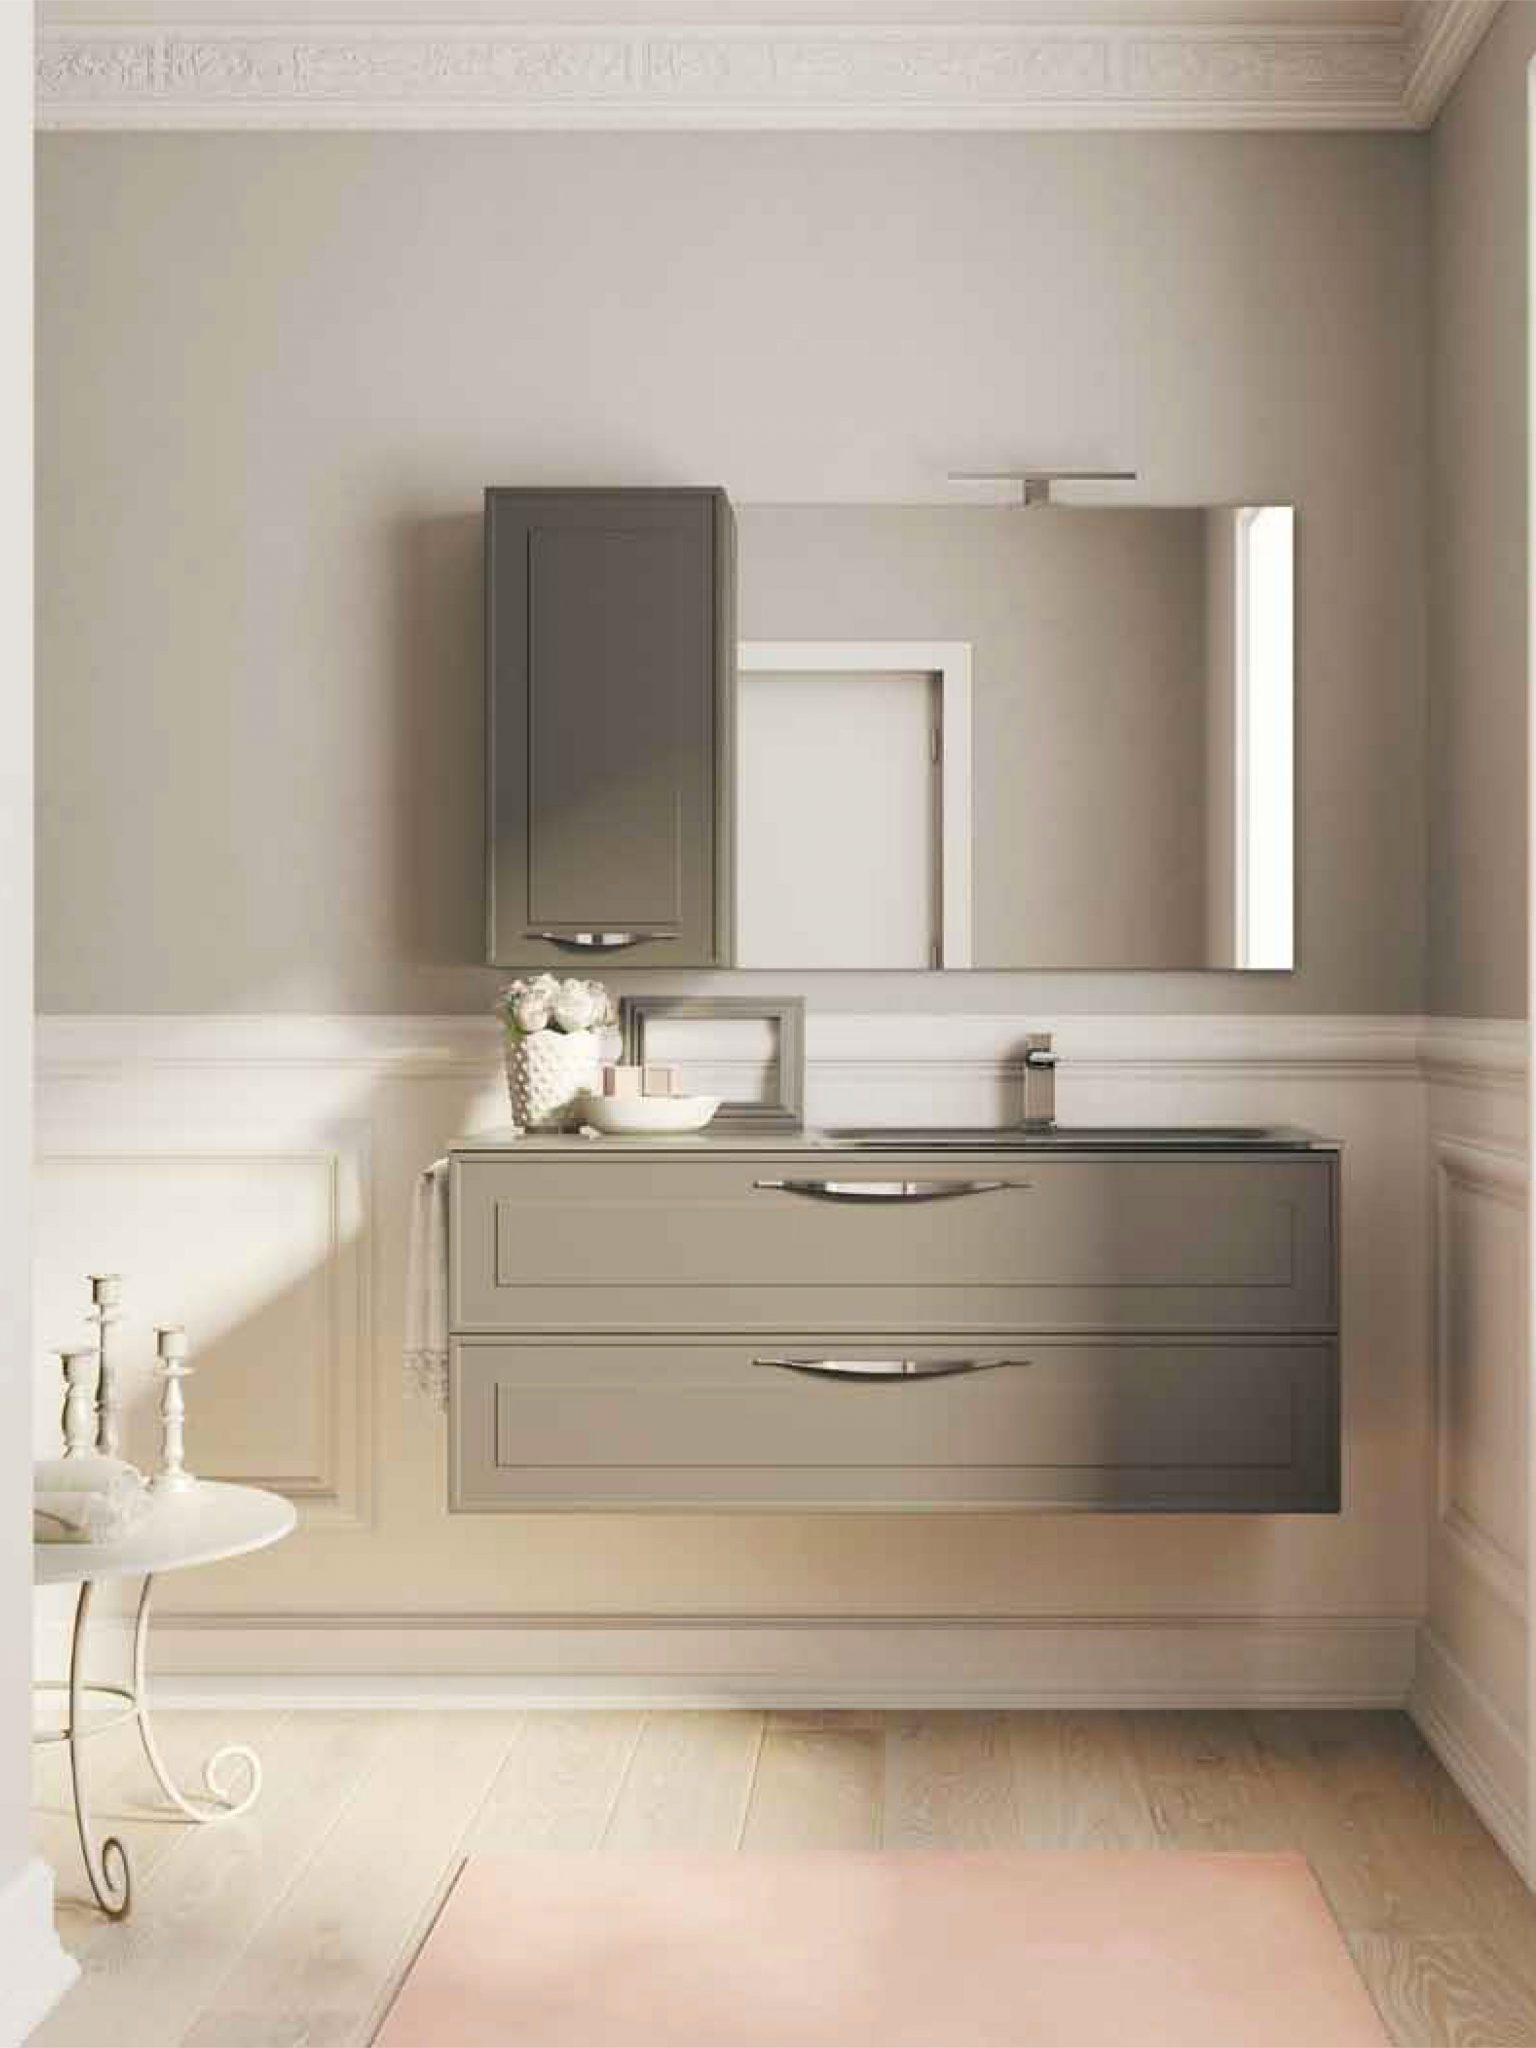 Idee per un bagno shabby chic ideagroup blog for Idee per arredare casa stile country